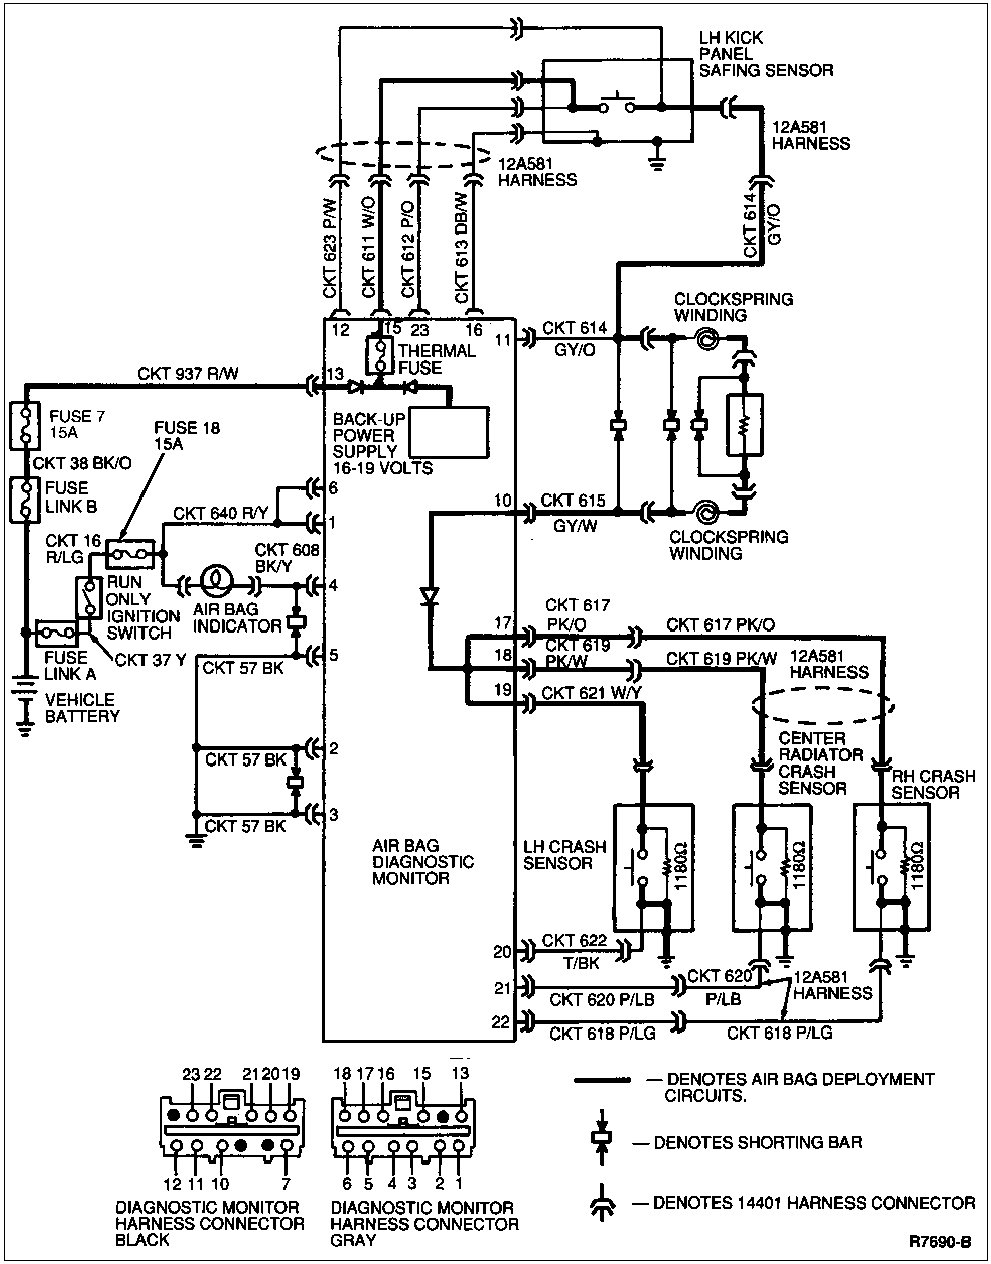 1992 Mustang Gt Wiring Diagram Library Schematic Air Bag